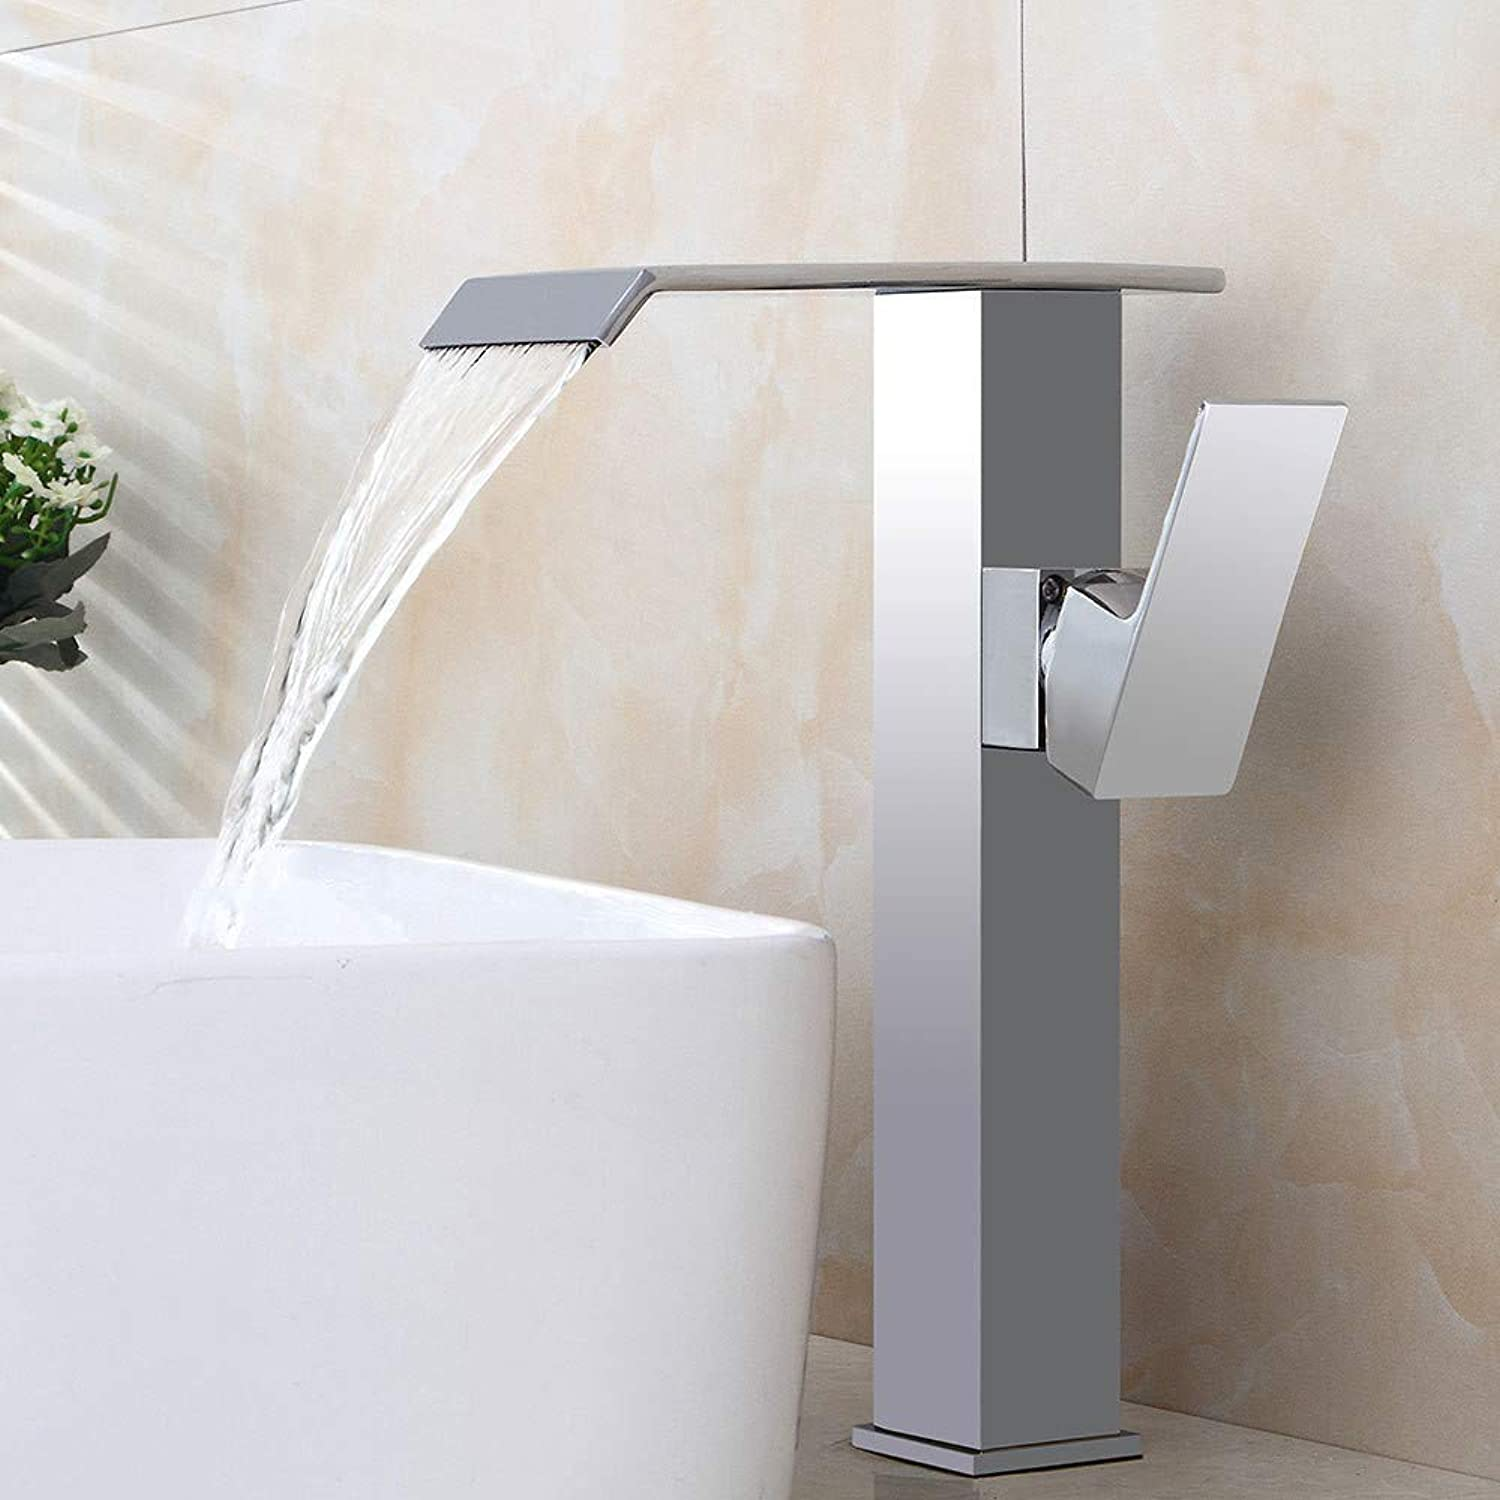 Chrome-Plated Brass Kitchen Faucet Plating Basin Faucet Above Counter Basin Hot and Cold Water Faucet Waterfall Bathroom Faucet